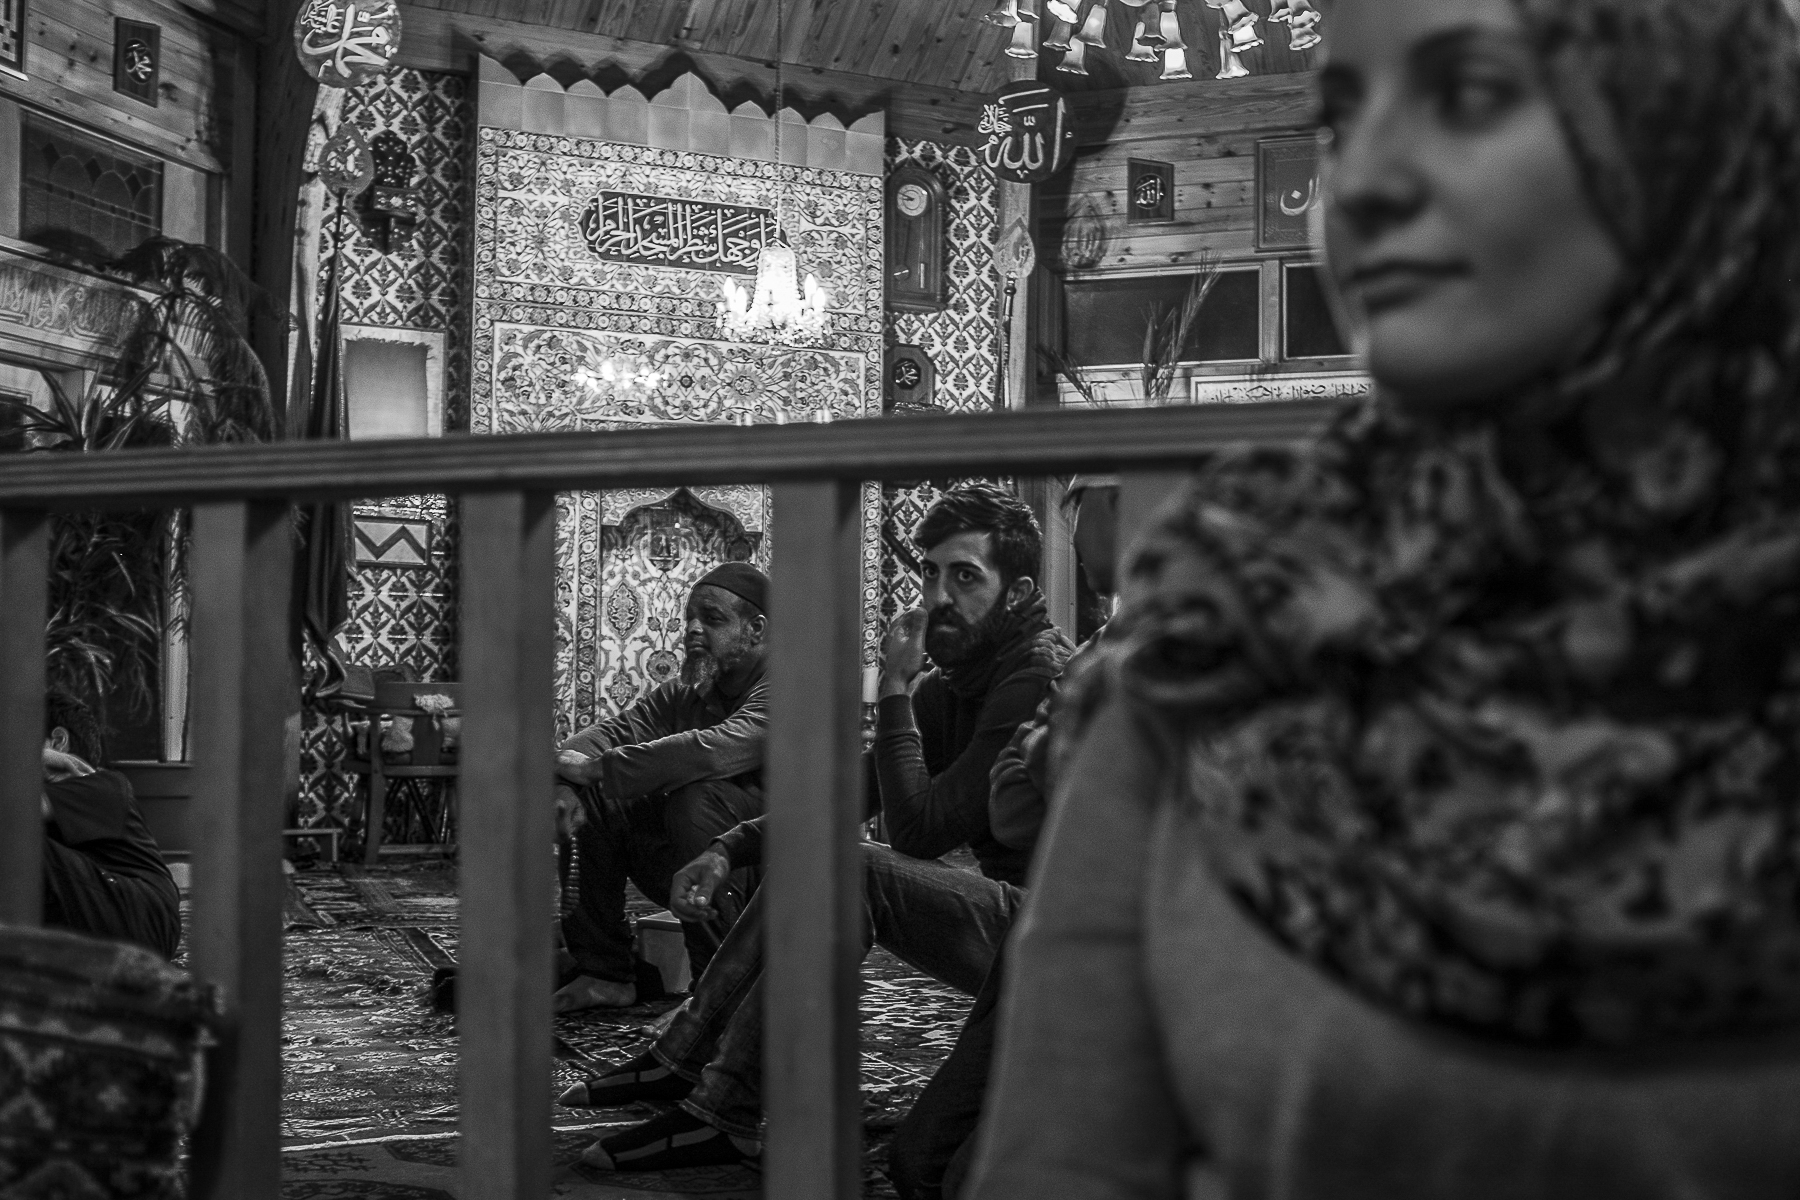 Men and women from Jordan, Syria and Bangladesh sit, barely separated by a wobbly hand rail, on the floor of the mosque listening to sheikh Tosun Bayrak give his weekly Sohbet—a talk ranging in topics that he delivers to his followers after dinner and before the ceremonies begin.